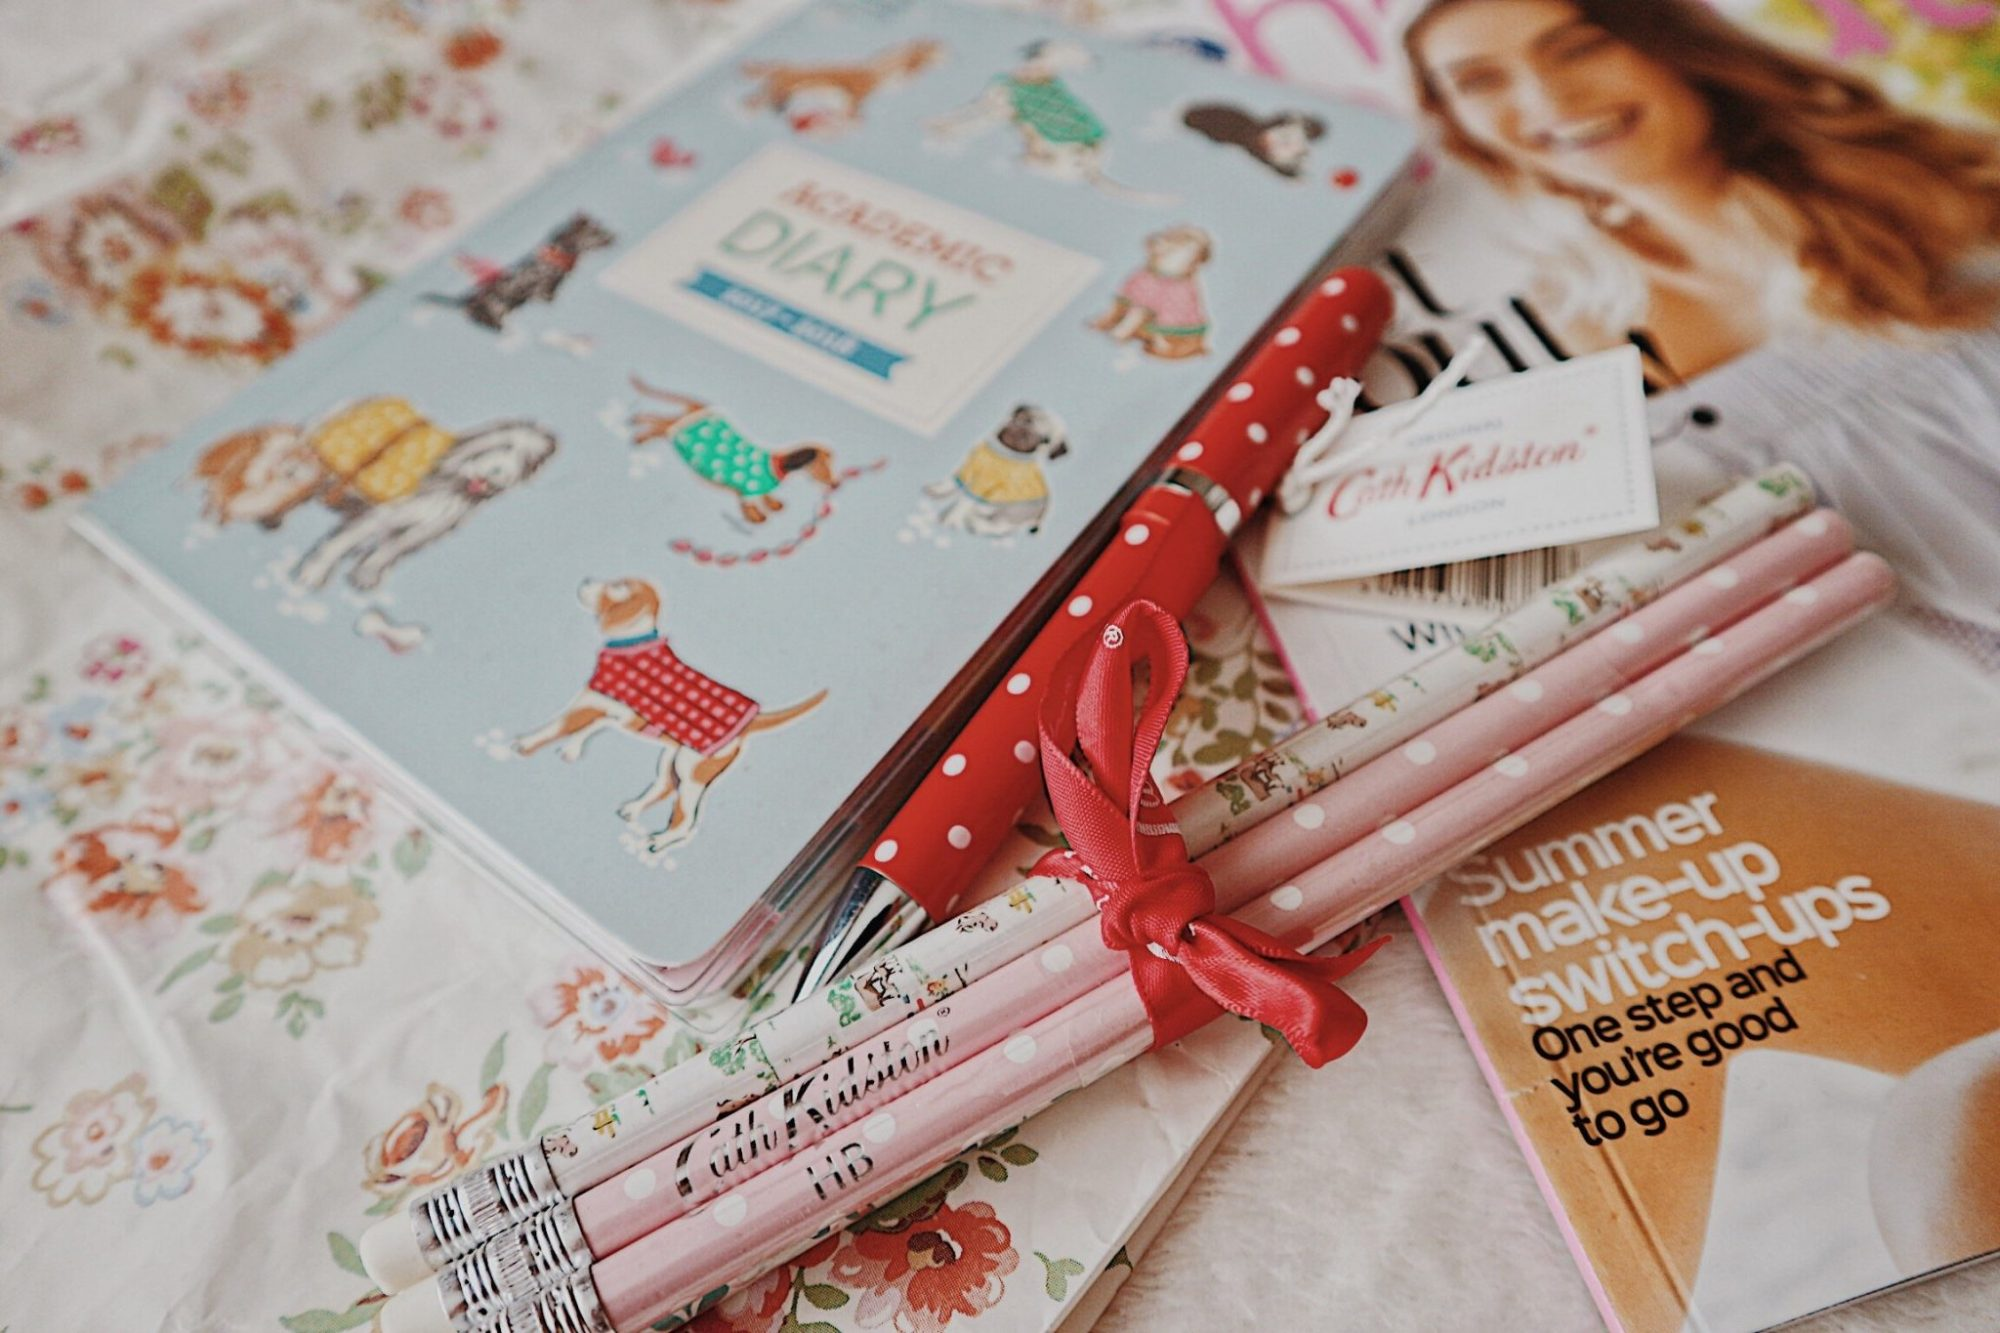 Cath Kidson Daily Year Planner | Red Polkadot Pen | Pink Pencils